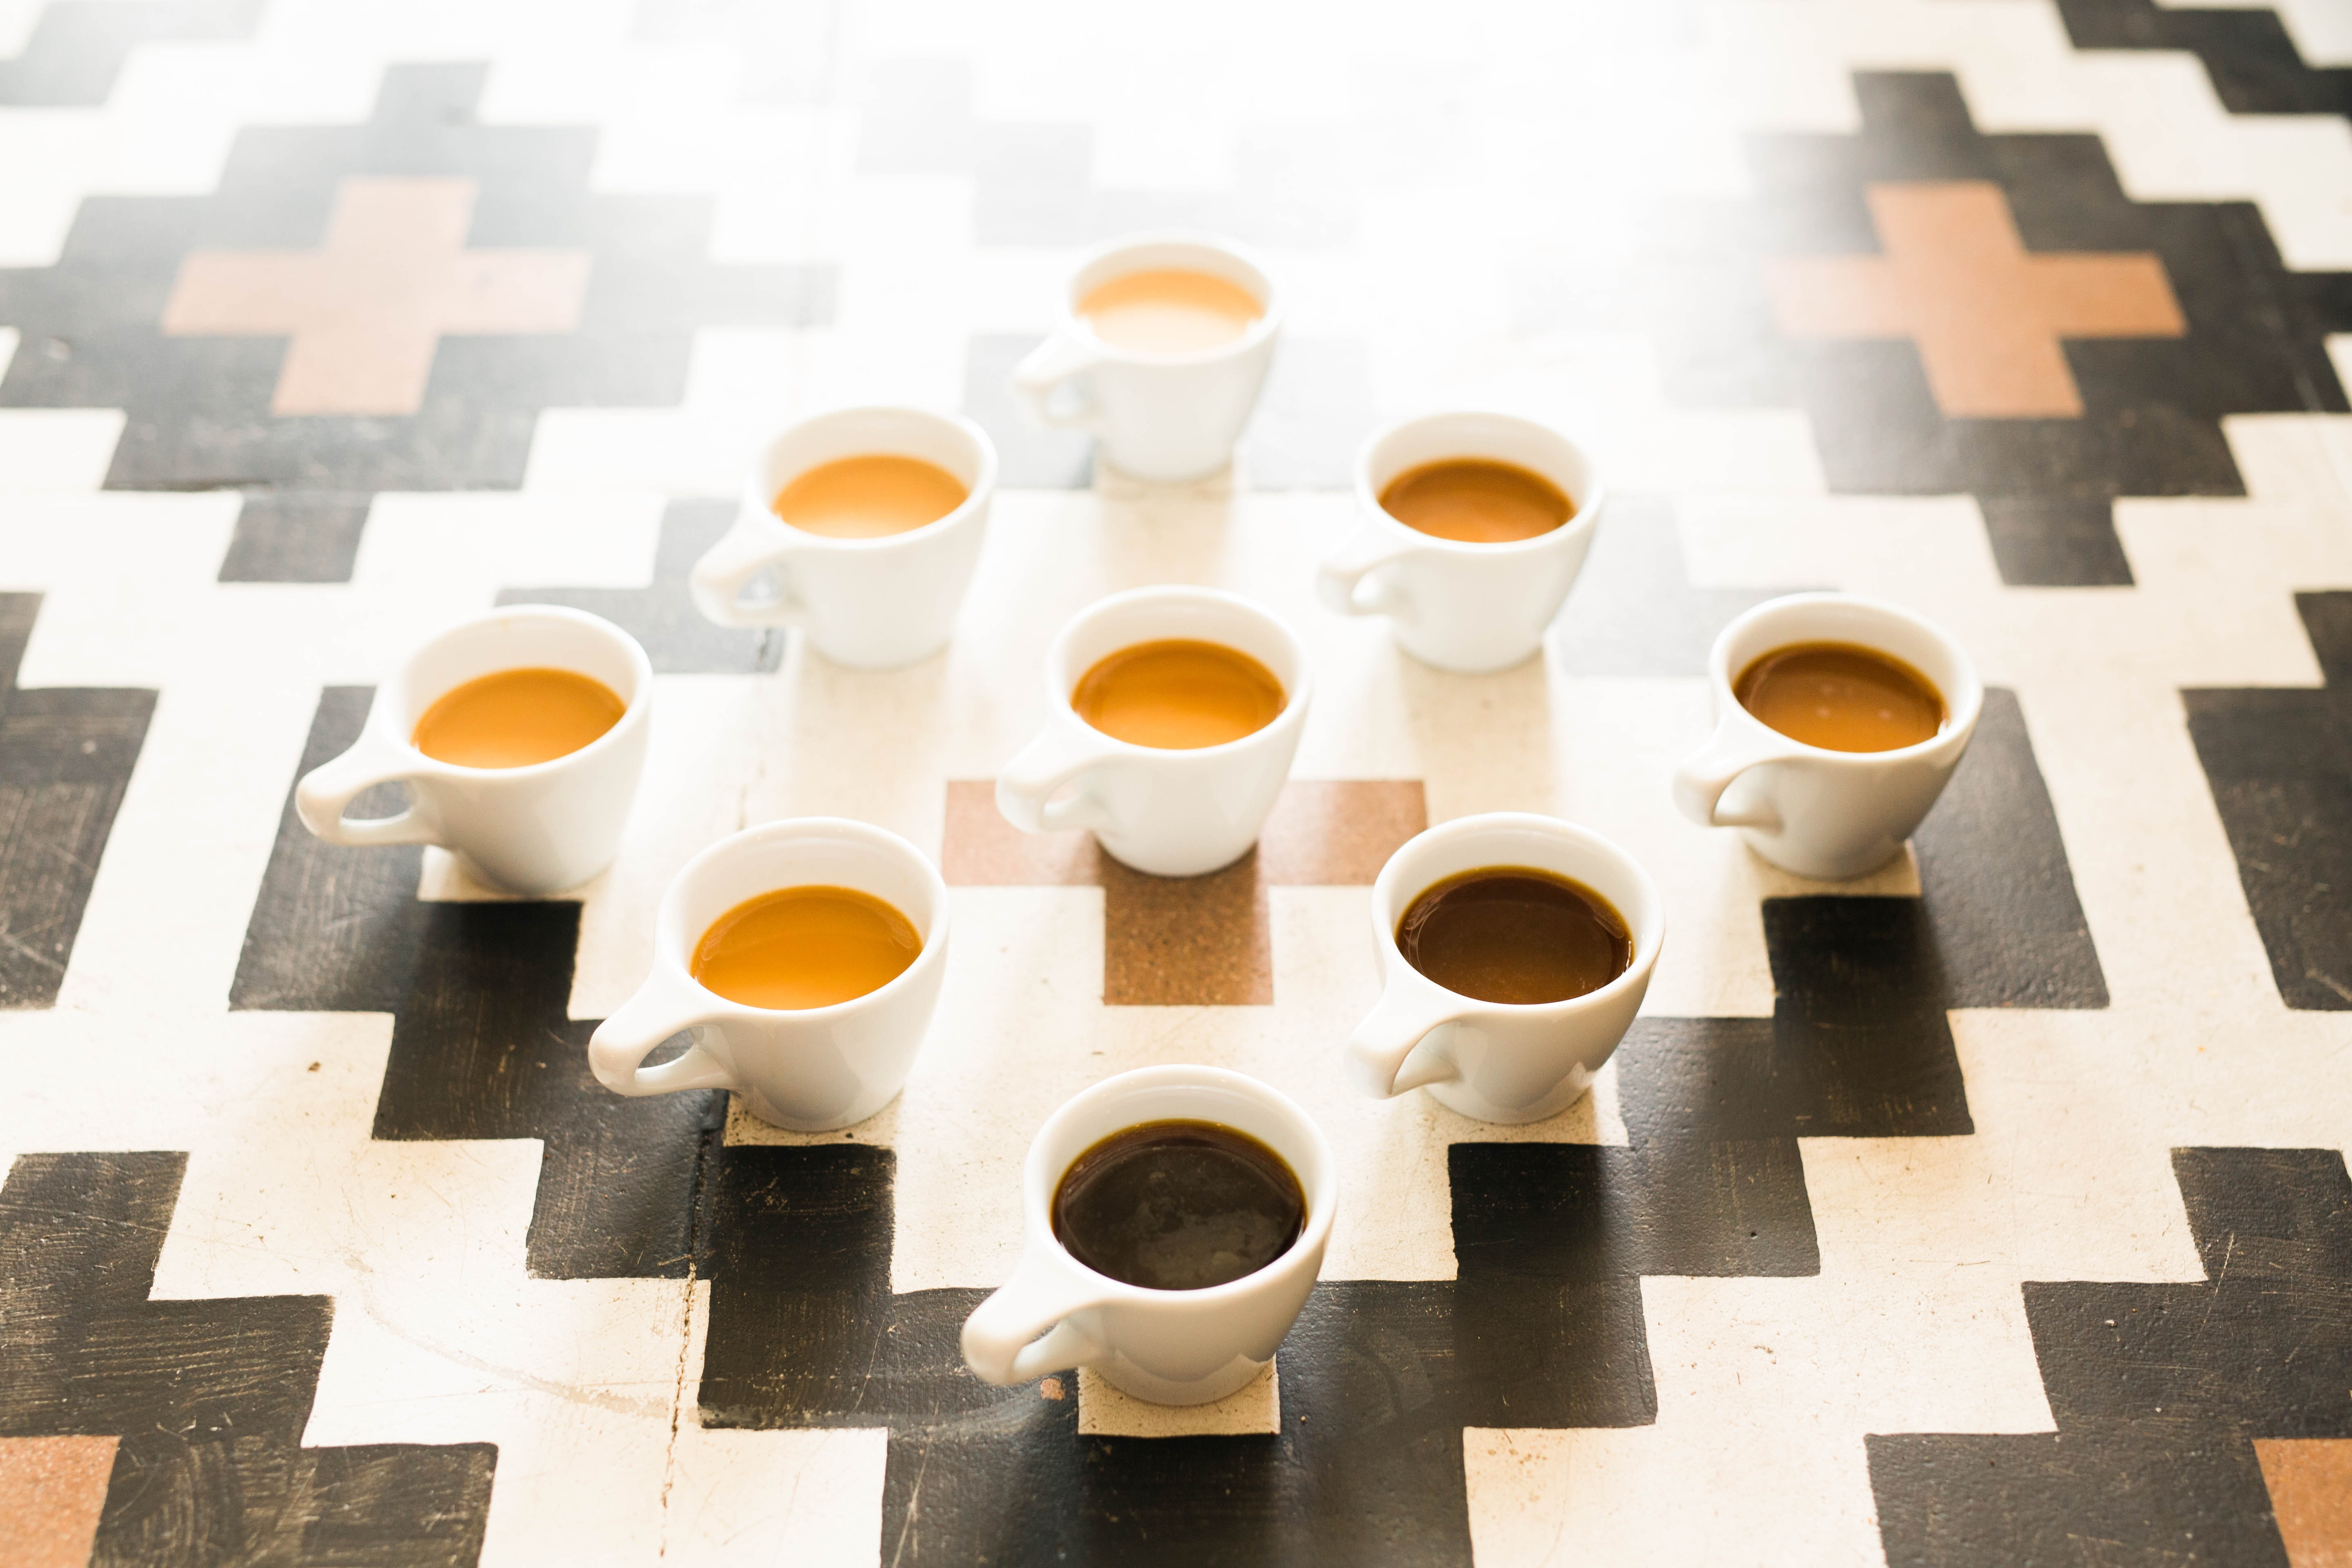 sensory test using different coffee to research